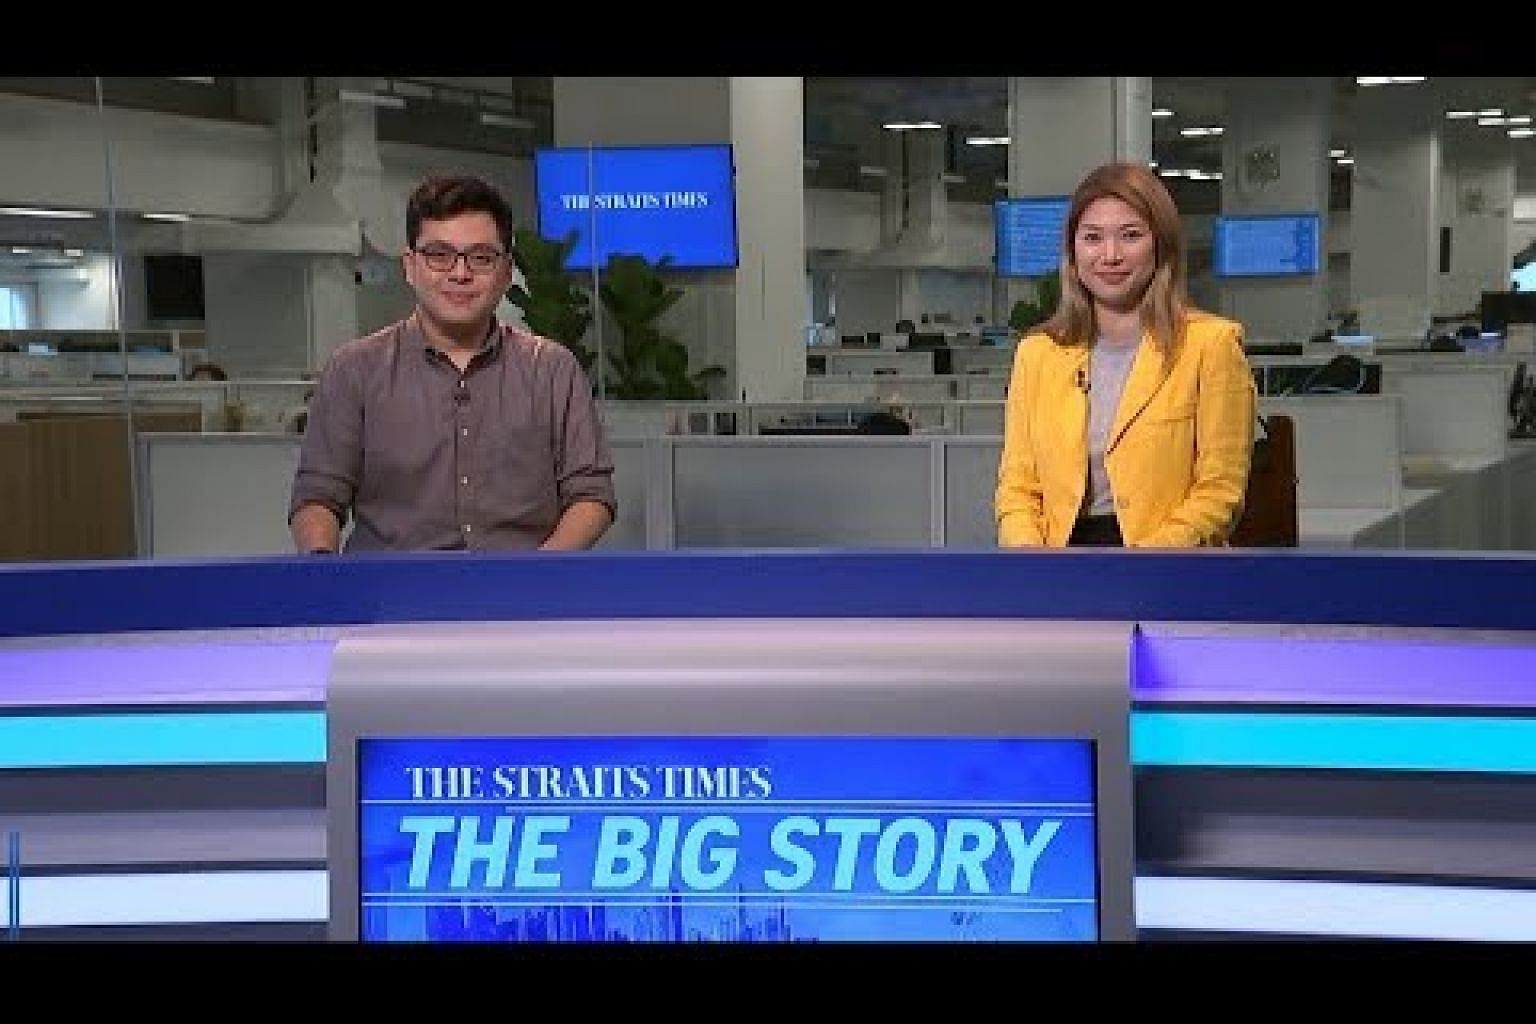 THE BIG STORY: How Djokovic beat Federer | Google is listening to you | The Straits Times (15/07/19)